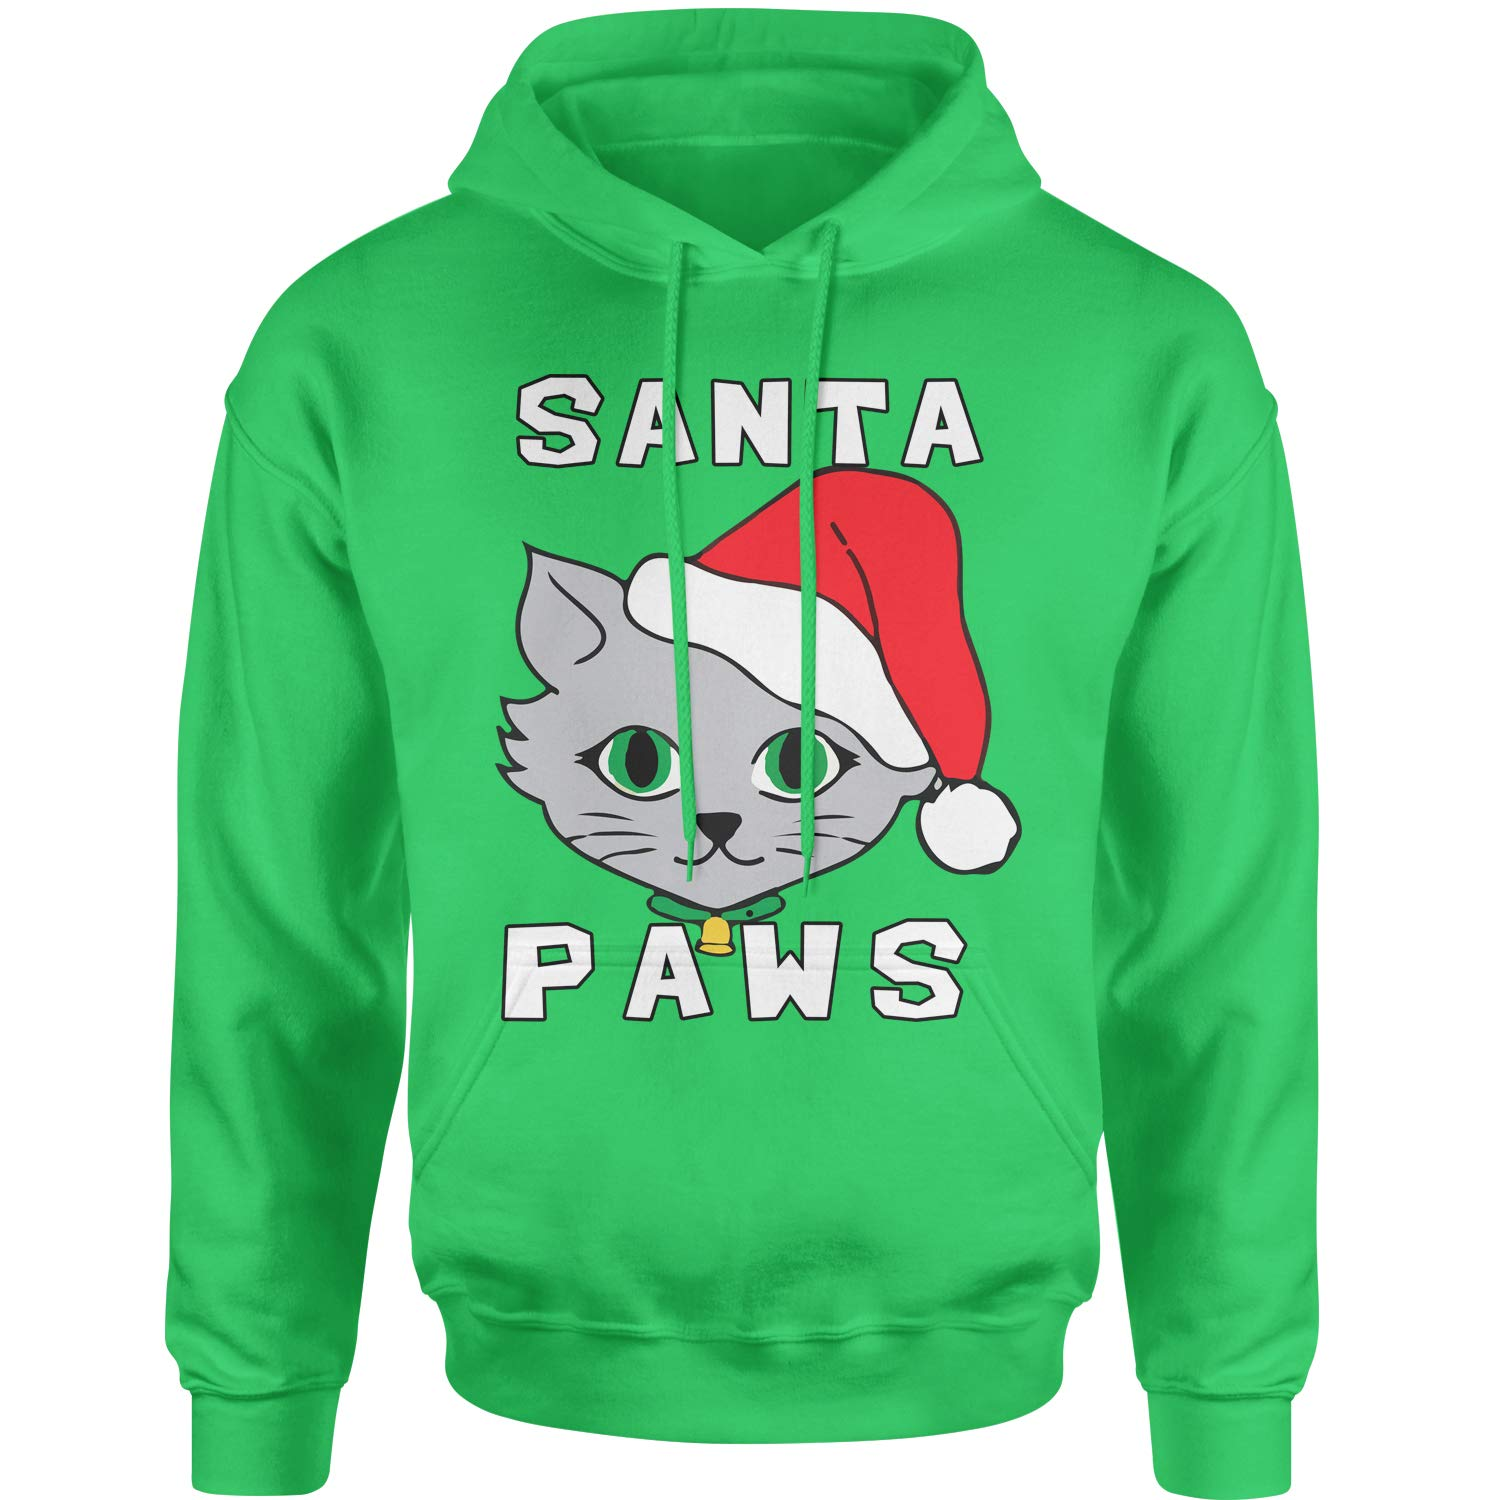 Motivated Culture Santa Paws Cat Kitten Ugly Christmas Adult Unisex Hoodie